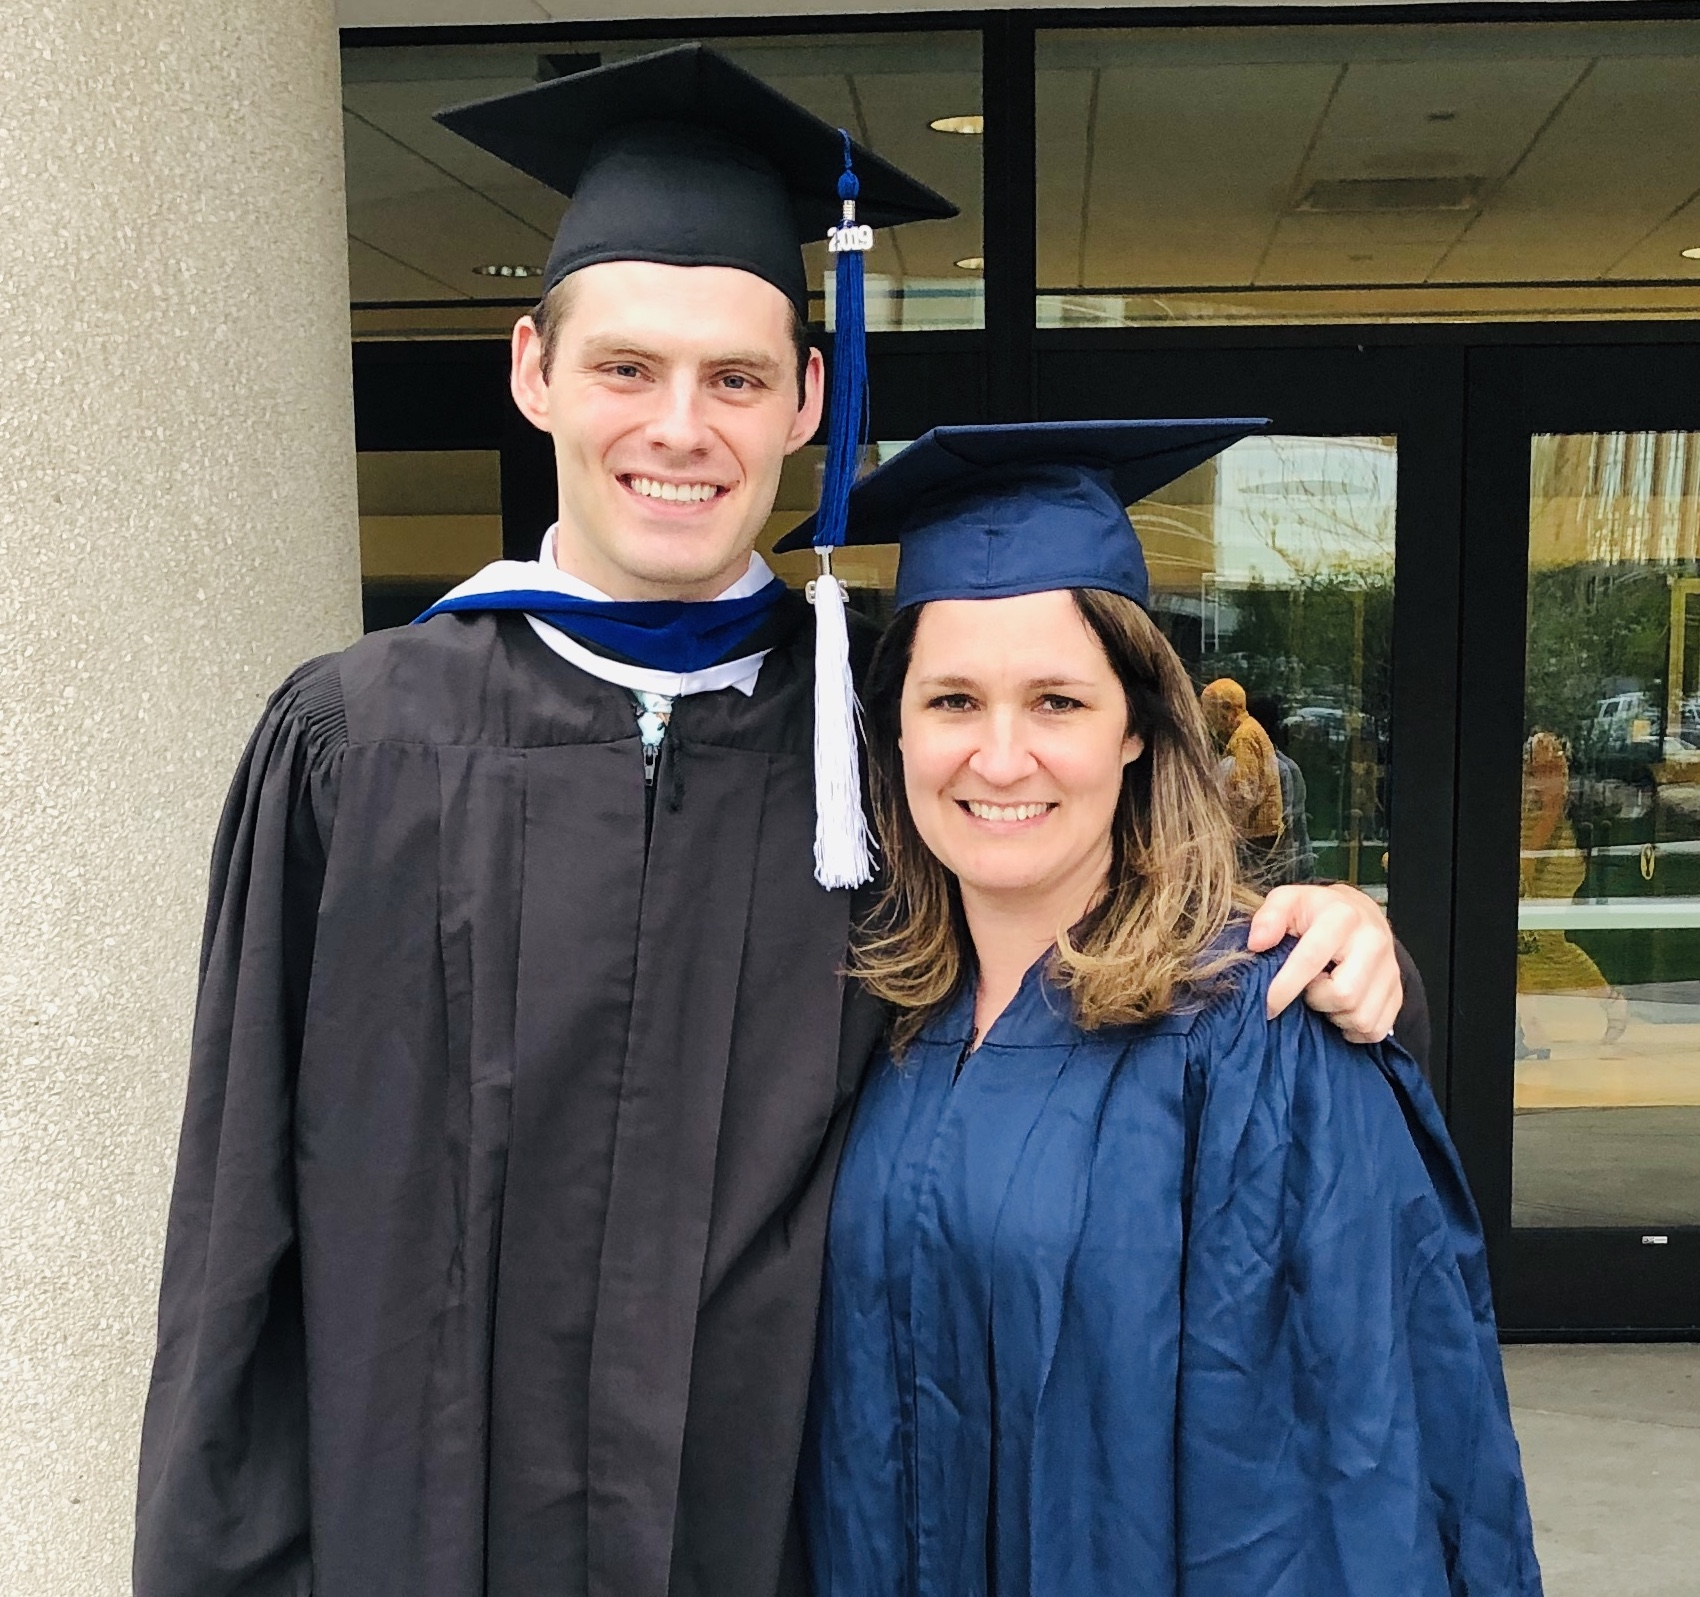 Blake Lawrence and his mother, Sheri Lawrence, both graduated recently from Brigham Young University. Sheri dropped out of BYU 25 years ago when she was expecting Blake.